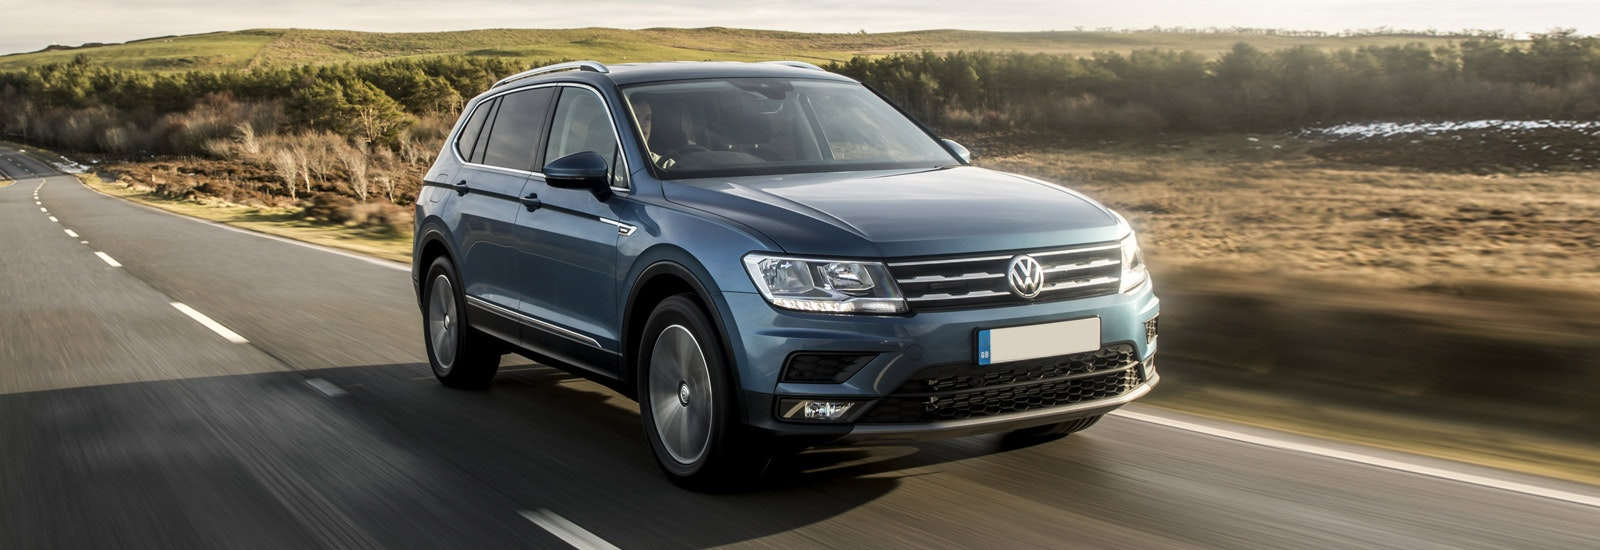 Blue Volkswagen Tiguan Allspace driving, viewed from the front